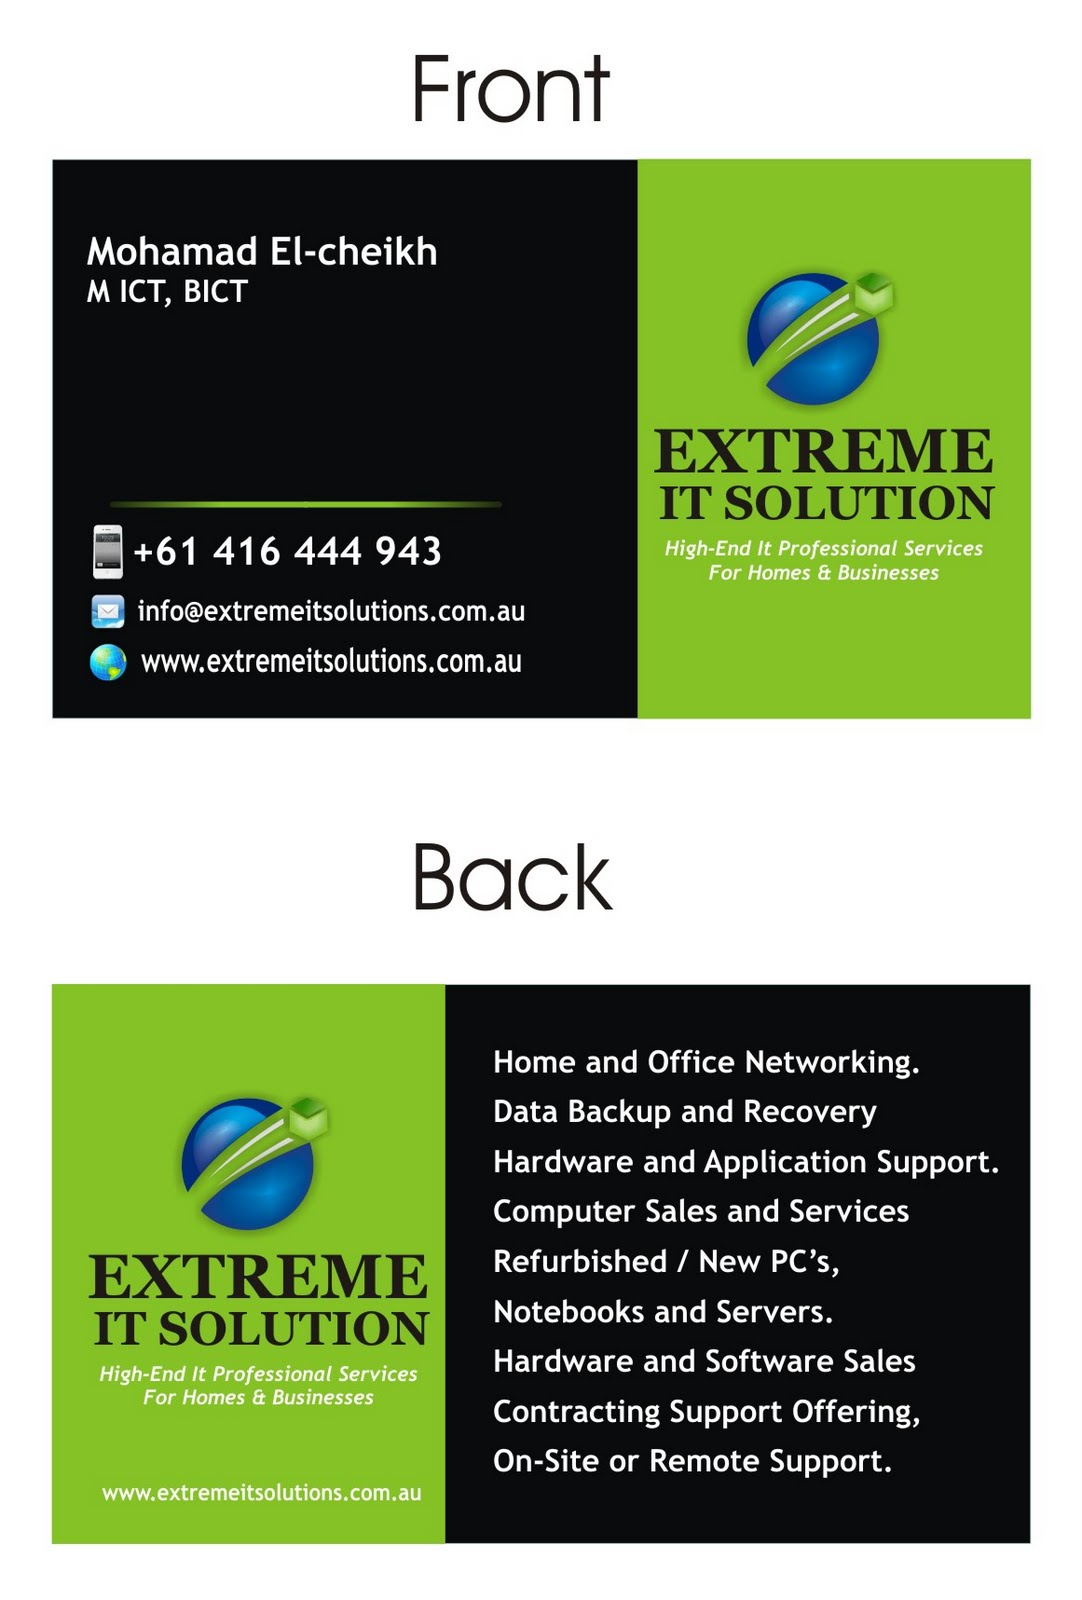 Computer Networking Business Cards Images - Card Design And Card ...